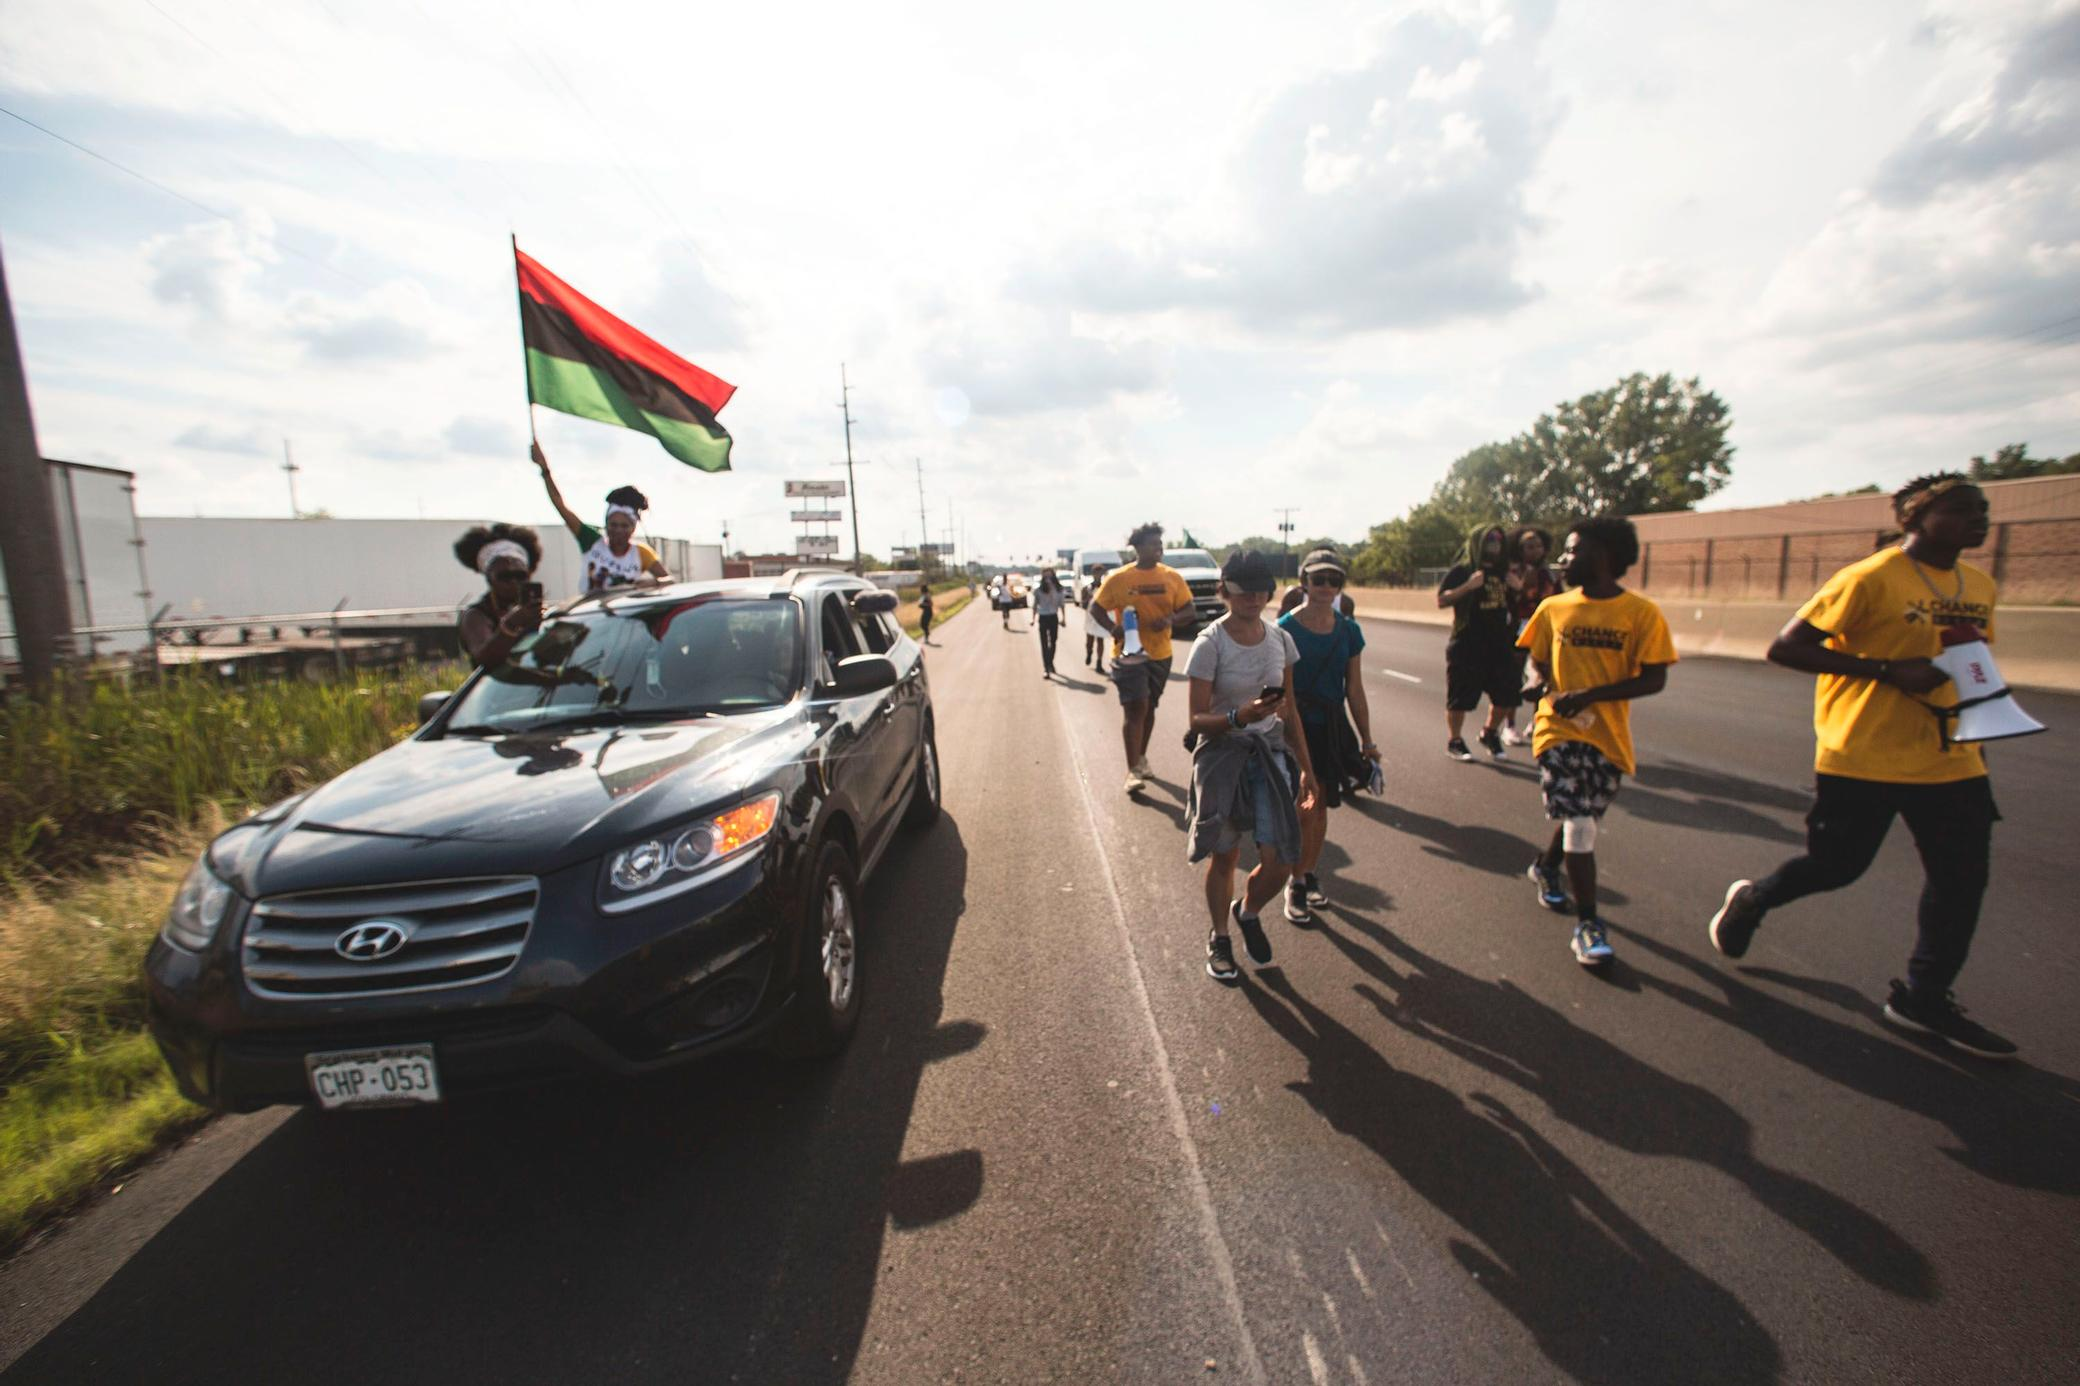 Civil rights marchers on a journey from Milwaukee to Washington, D.C.